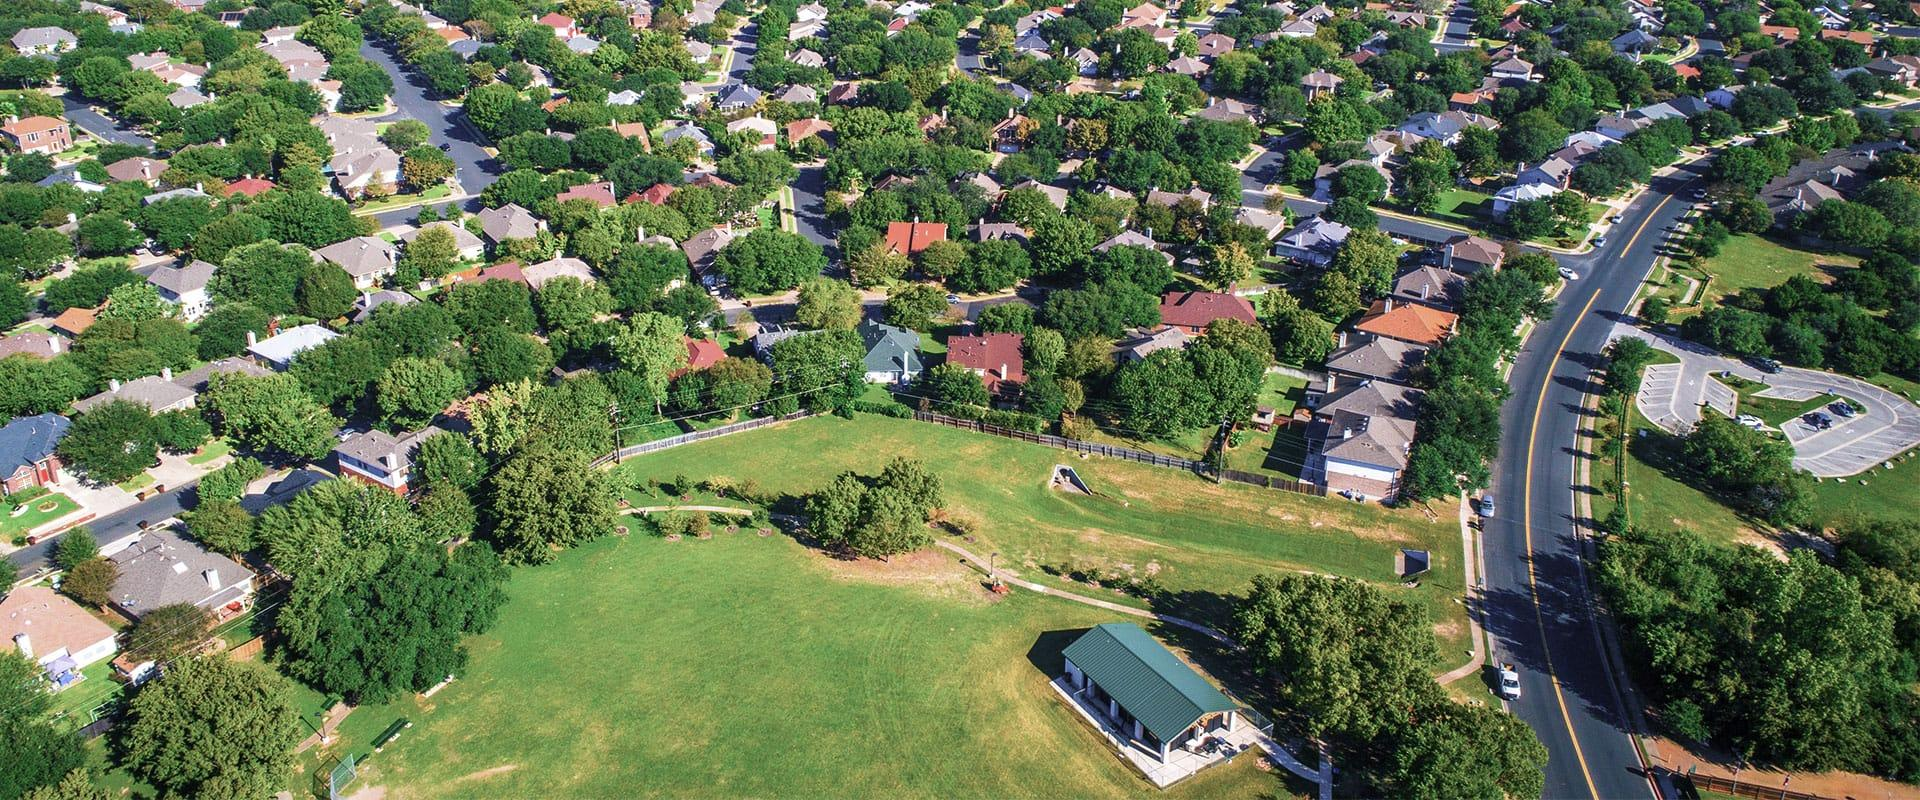 overhead view of a neighborhood in dallas texas